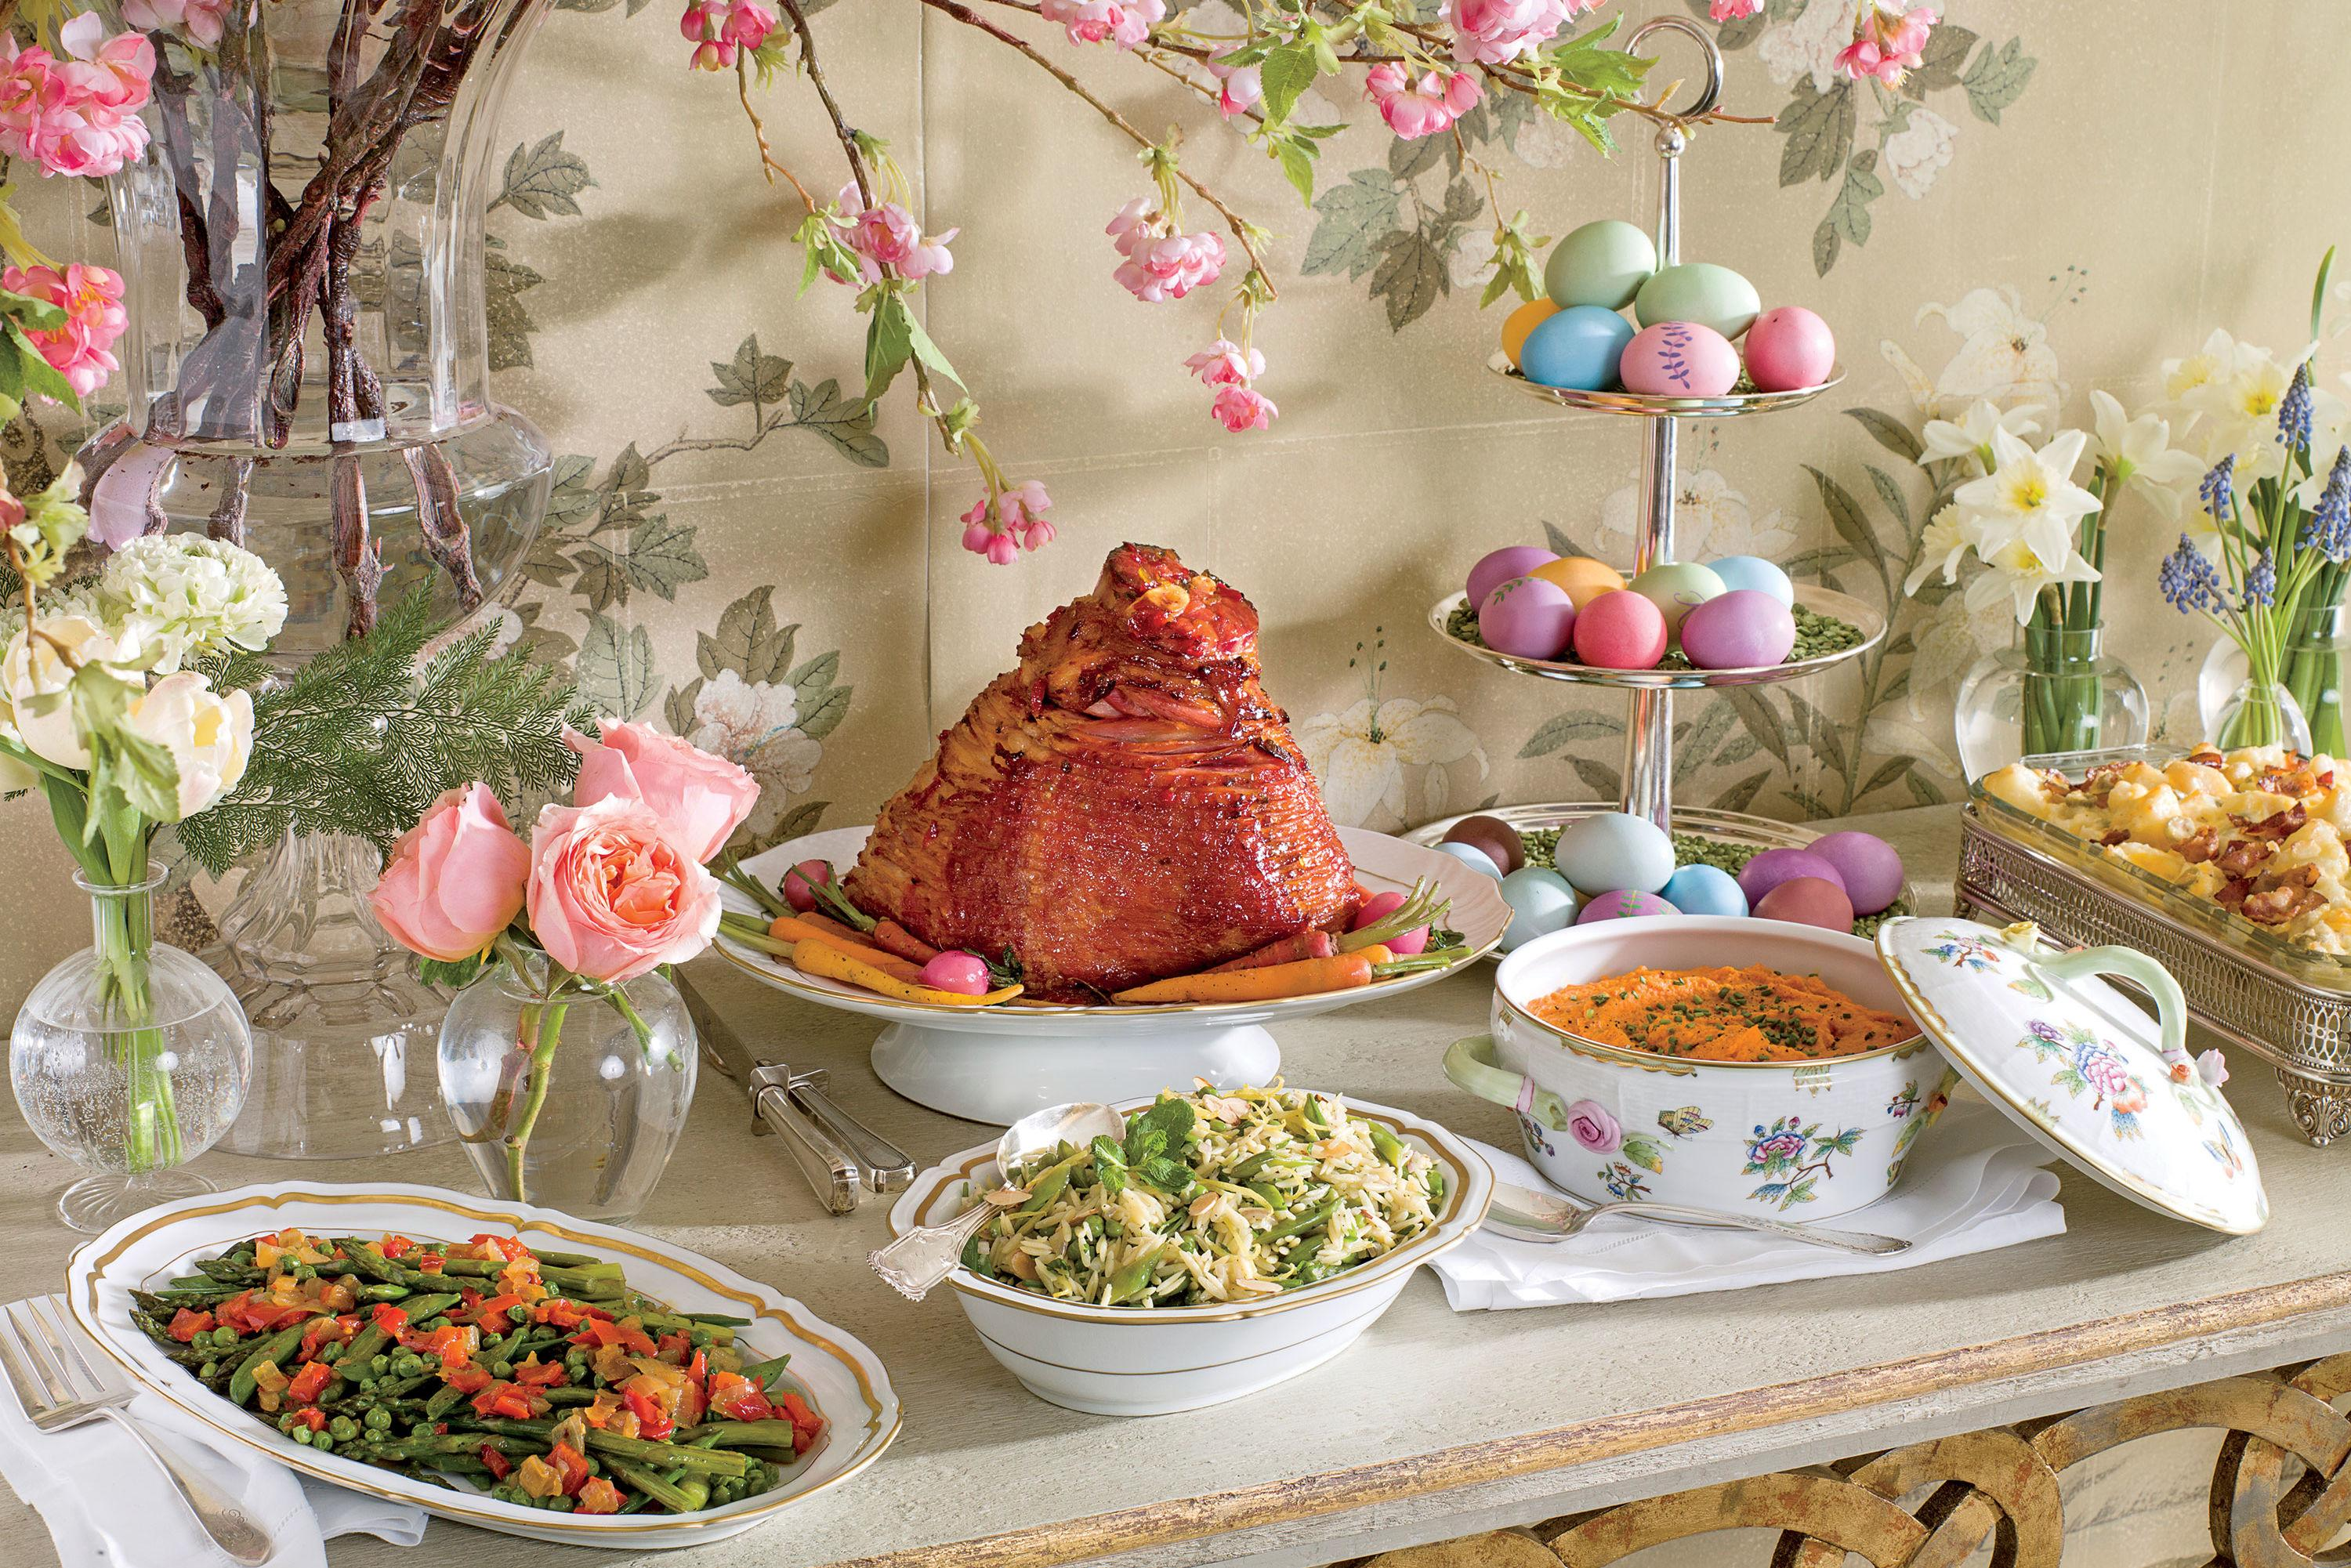 """<p><strong>Watch: <a href=""""http://www.southernliving.com/food/how-to/ham-glaze-recipe-video"""" rel=""""nofollow noopener"""" target=""""_blank"""" data-ylk=""""slk:How To Make a No-Fail Glaze For Your Easter Ham"""" class=""""link rapid-noclick-resp"""">How To Make a No-Fail Glaze For Your Easter Ham</a></strong></p> <p> Celebrate Easter this year with a traditional dinner of ham, lamb, or chicken. We have a wide range of Easter recipes from more casual options like the Lexington-Style Grilled Chicken all the way to an elegant Dijon Rack of Lamb. So set your table and serve up one of these Easter recipes for your family. What's so wonderful about Easter dinner is that these recipes help you put your family favorites on the table with whatever main dish makes your family's mouth water, or whichever savory selection brings back the most beloved memories. Settle in for a beautiful dinner and share these recipes with your family and friends.</p>"""